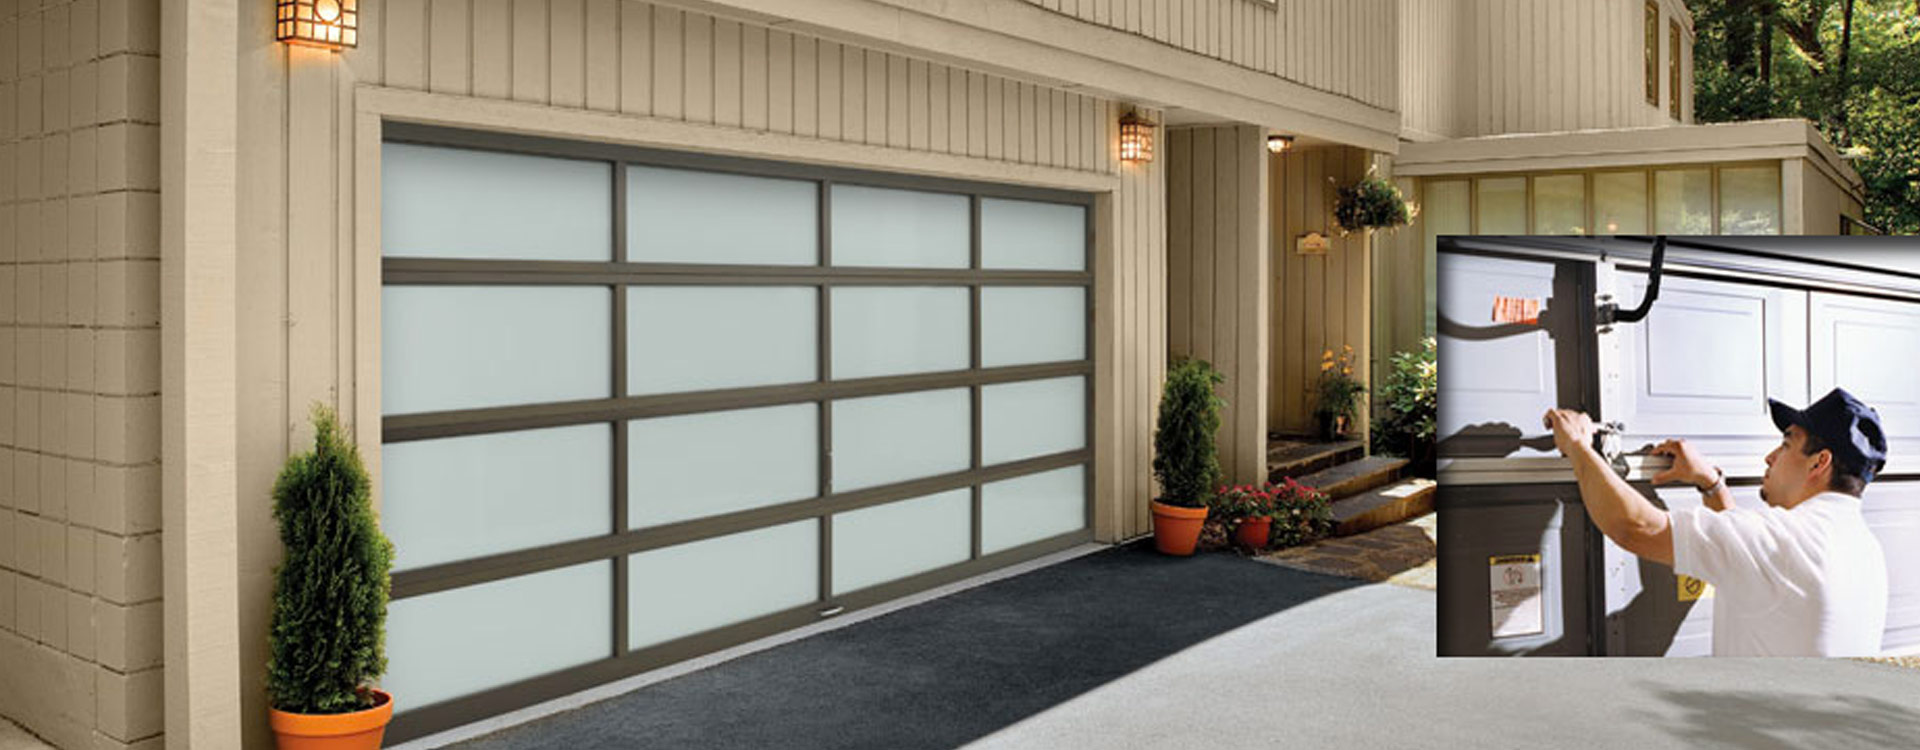 Garage Doors Installation and Repair Las Vegas